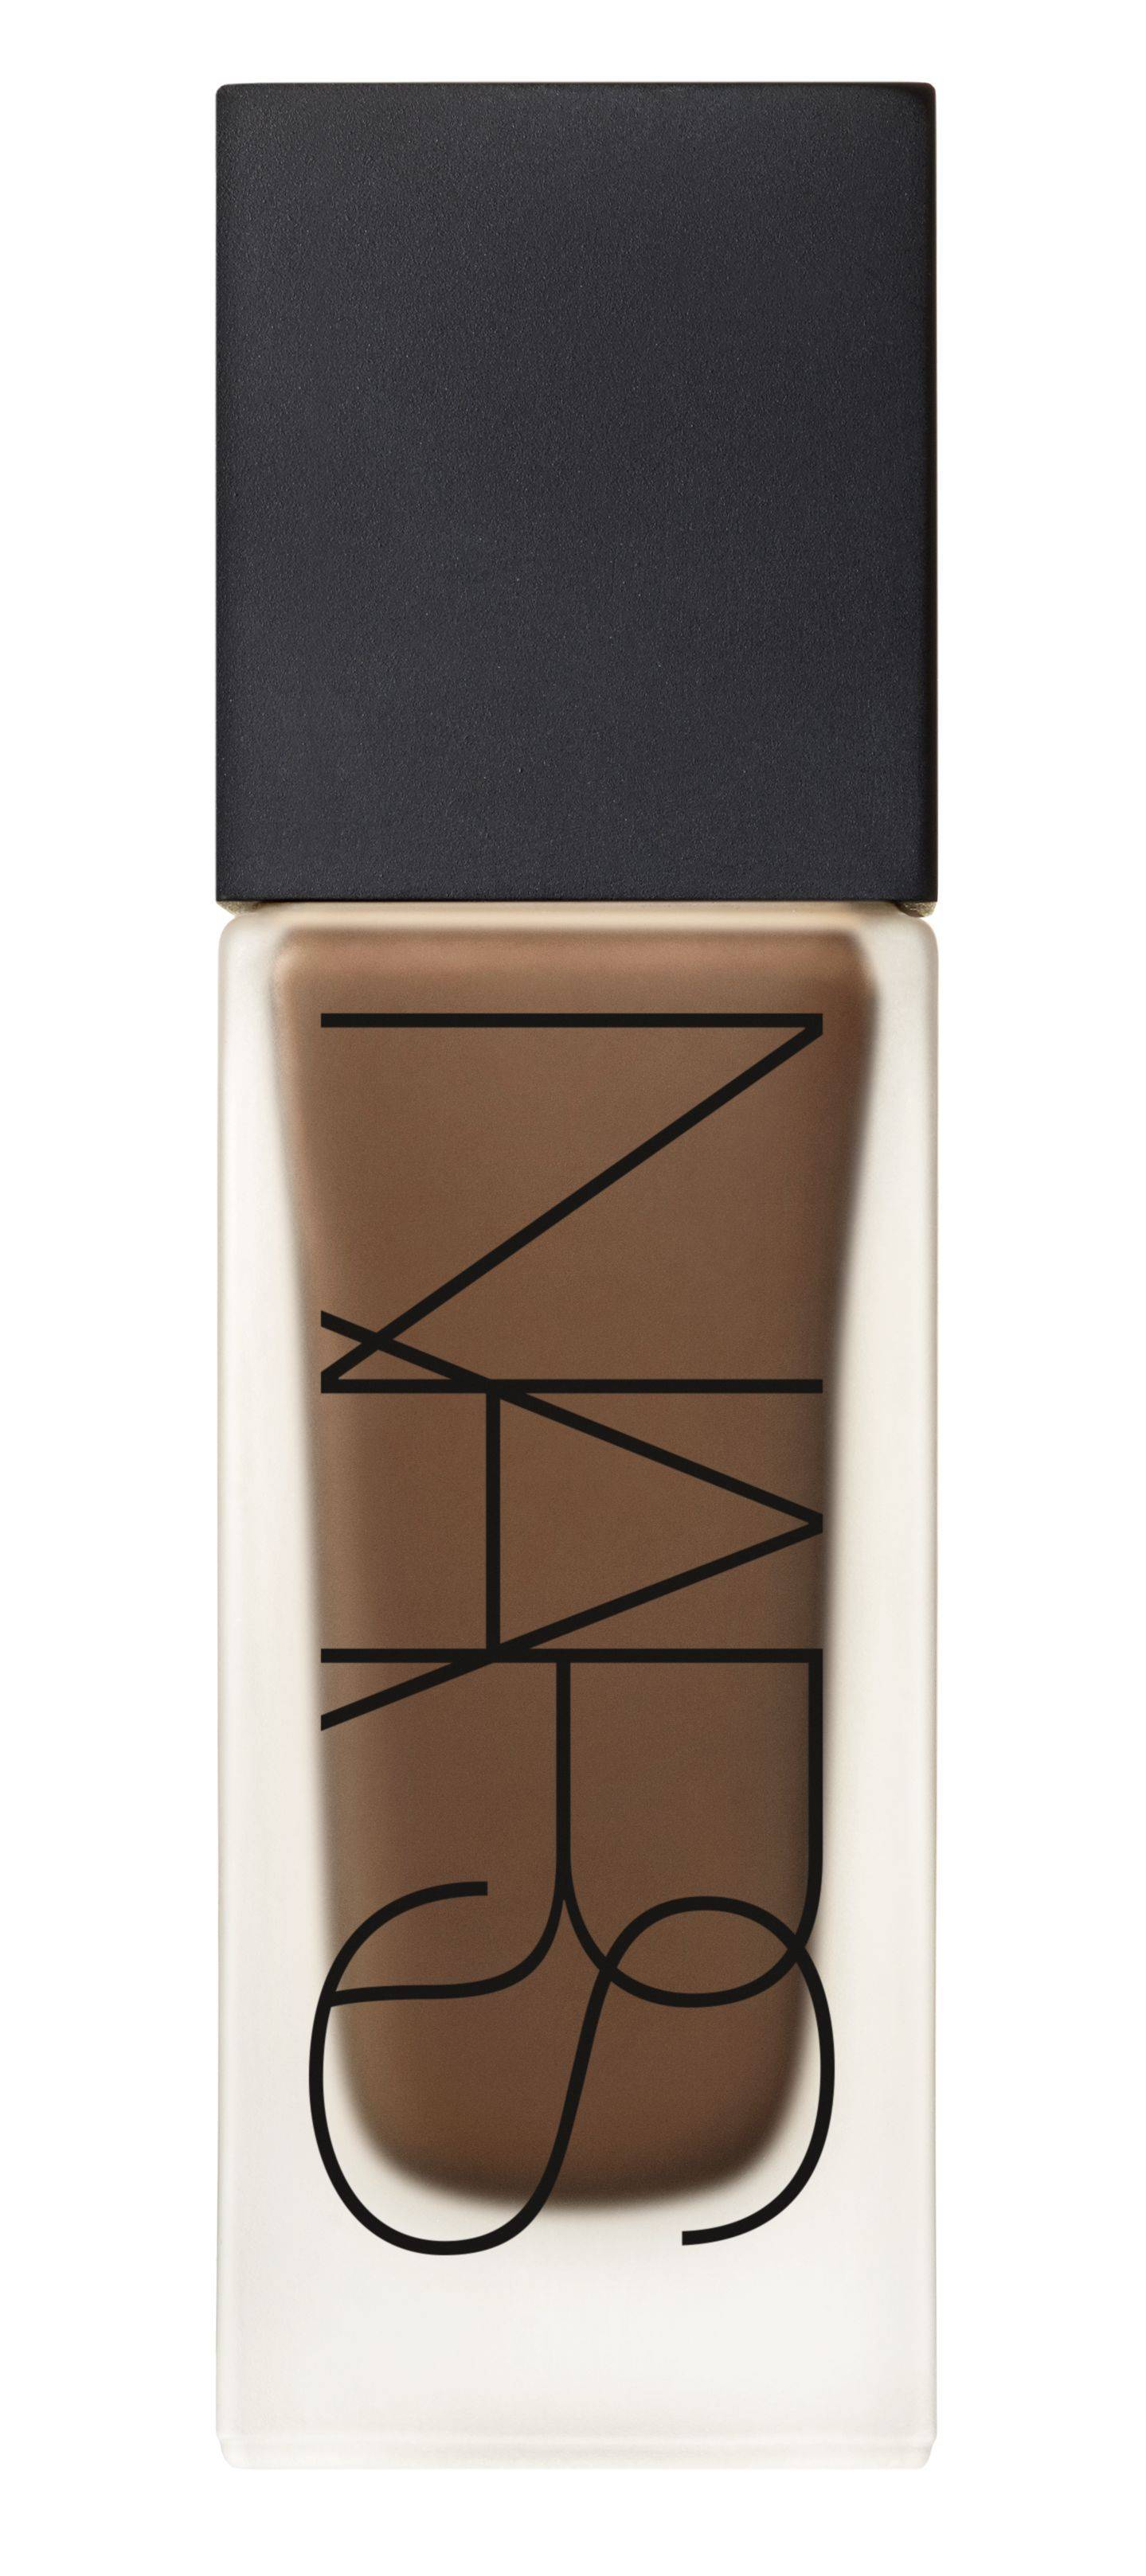 Nars Cosmetics All Day Luminous Weightless Foundation